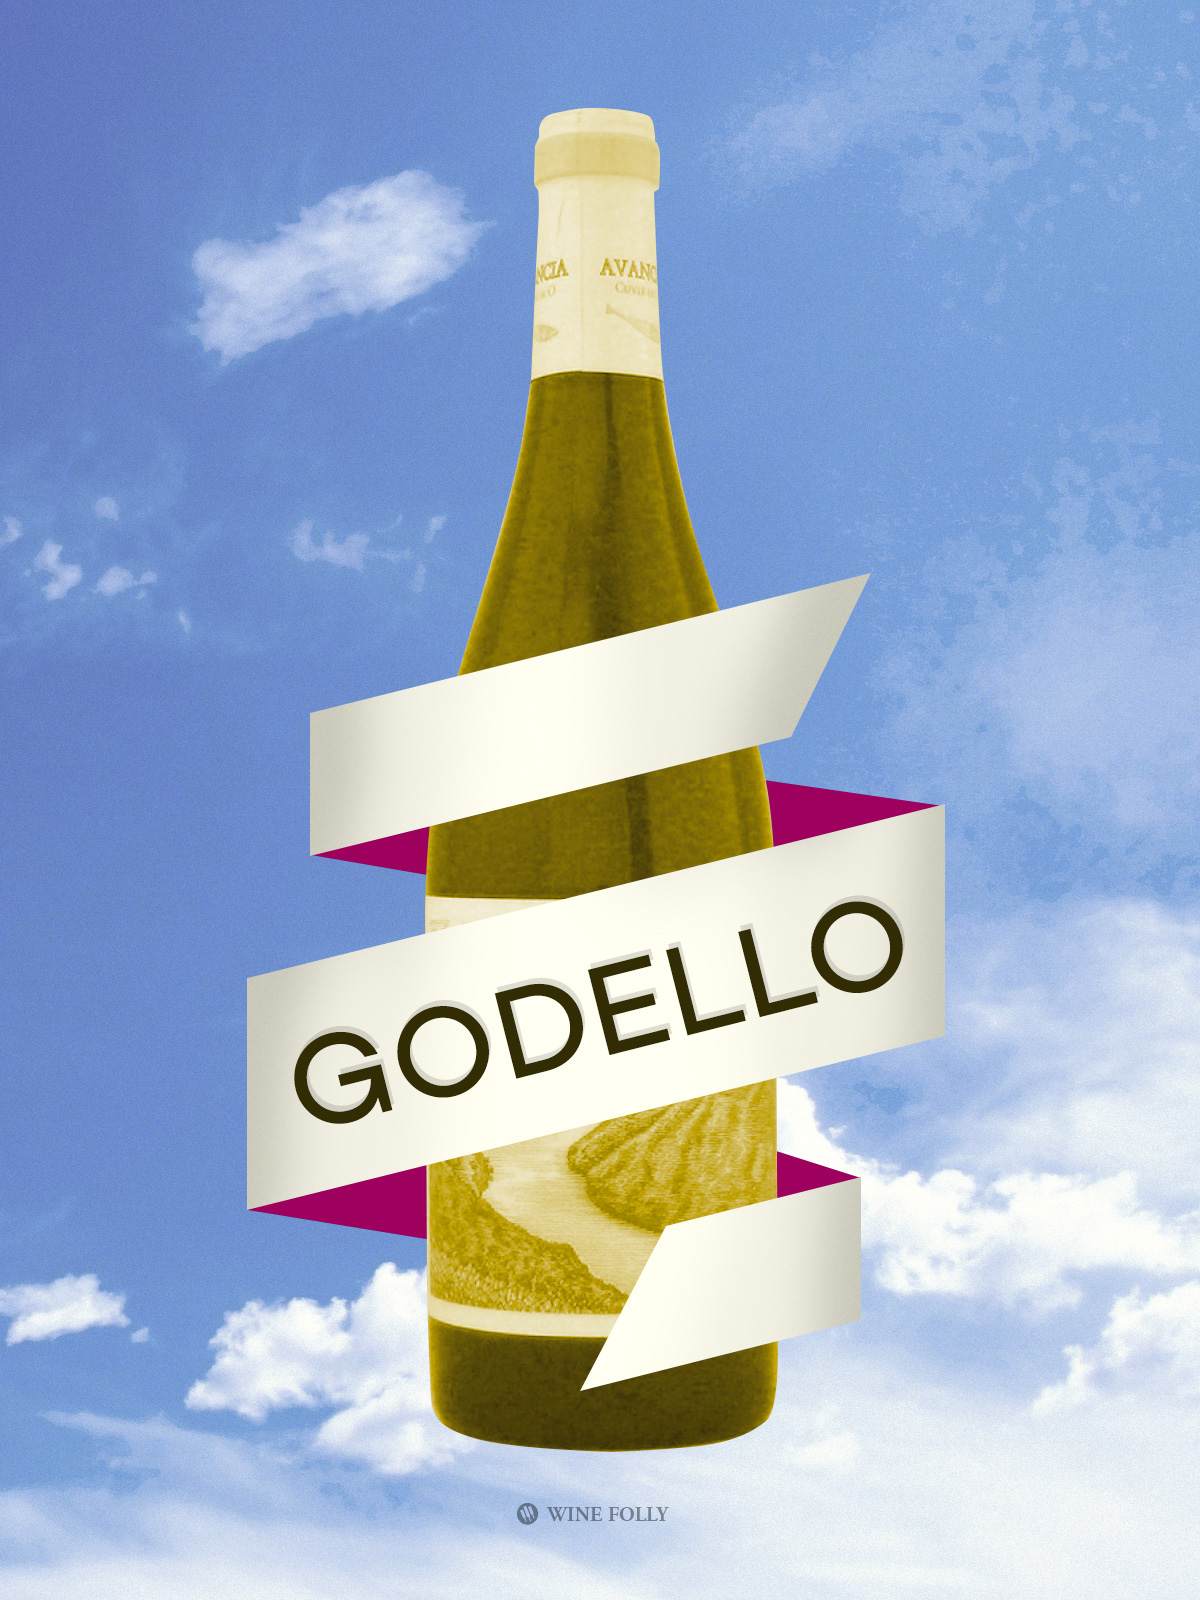 Godello Illustration by Wine Folly